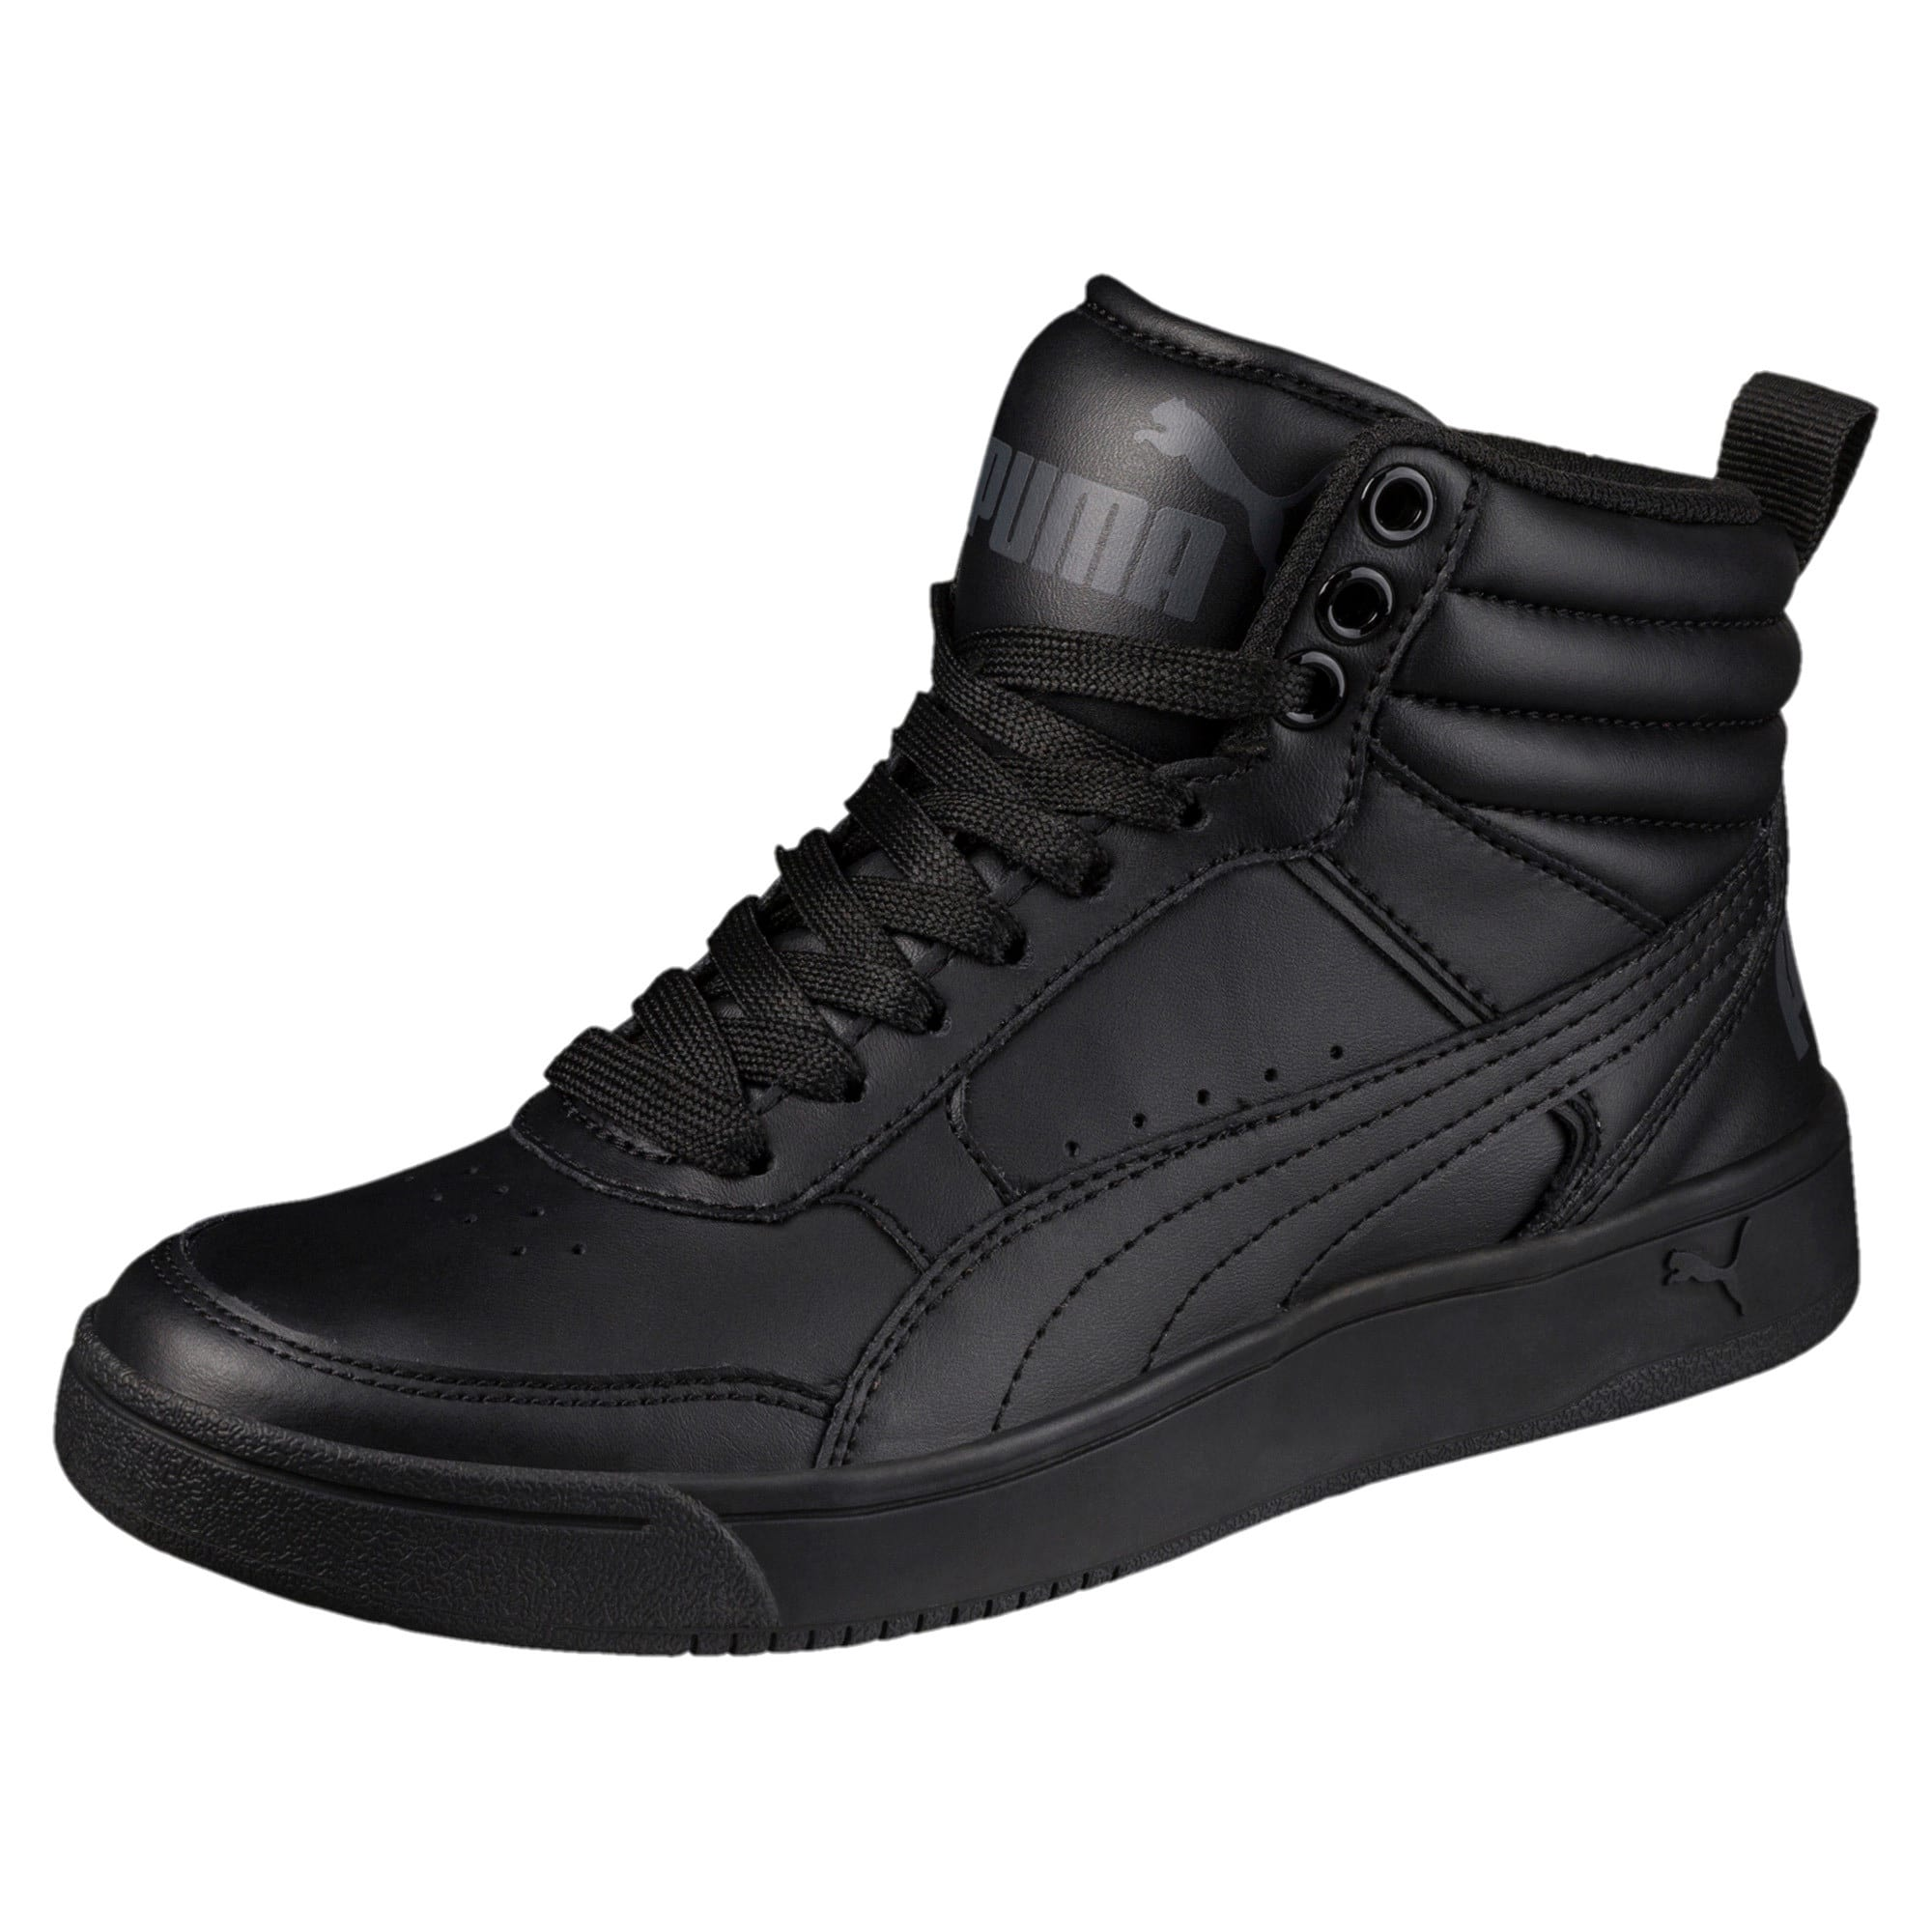 Thumbnail 1 of Rebound Street v2 Leather Kids' High Tops, Puma Black-Puma Black, medium-IND